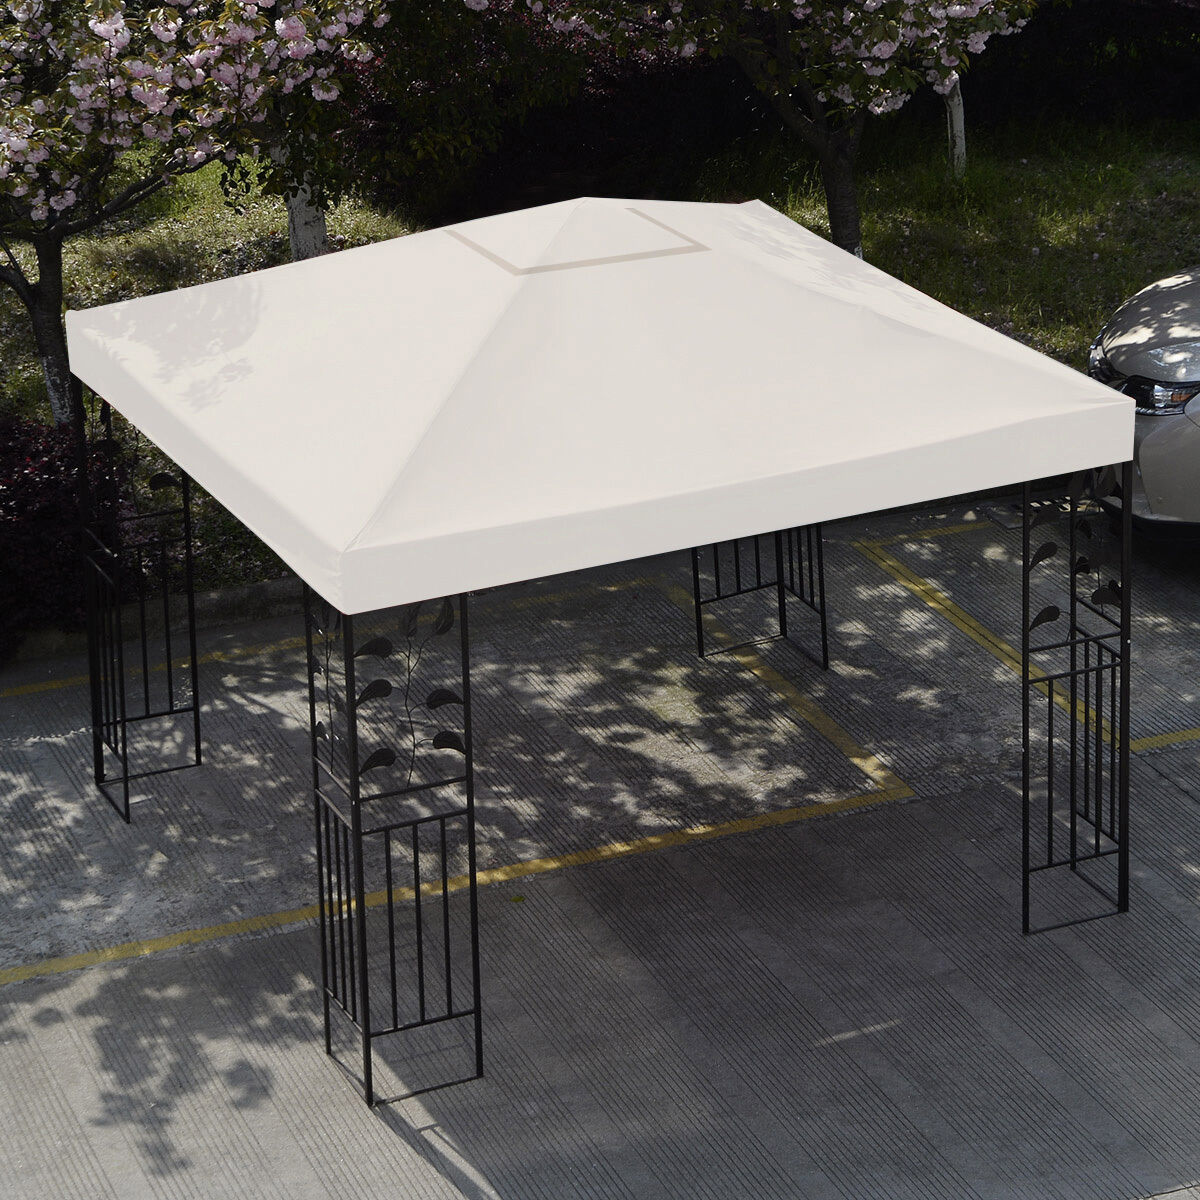 10-039-X-10-039-Gazebo-Top-Cover-Patio-Canopy-Replacement-1-Tier-or-2-Tier-3-Color-New thumbnail 5